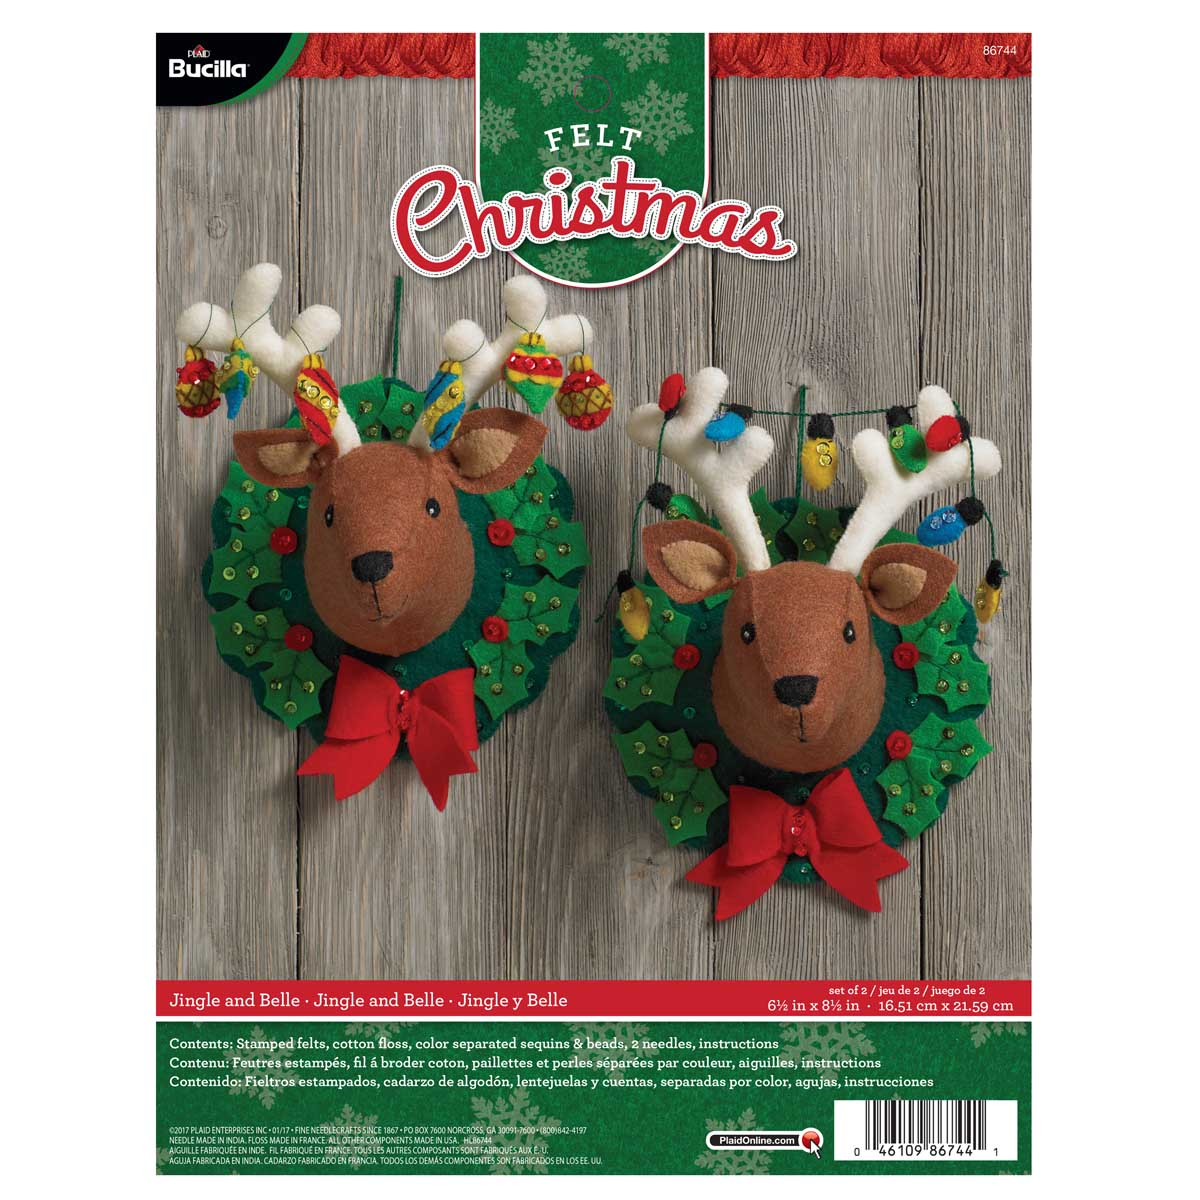 Bucilla ® Seasonal - Felt - Home Decor - Jingle and Belle 3D Wall Hanging